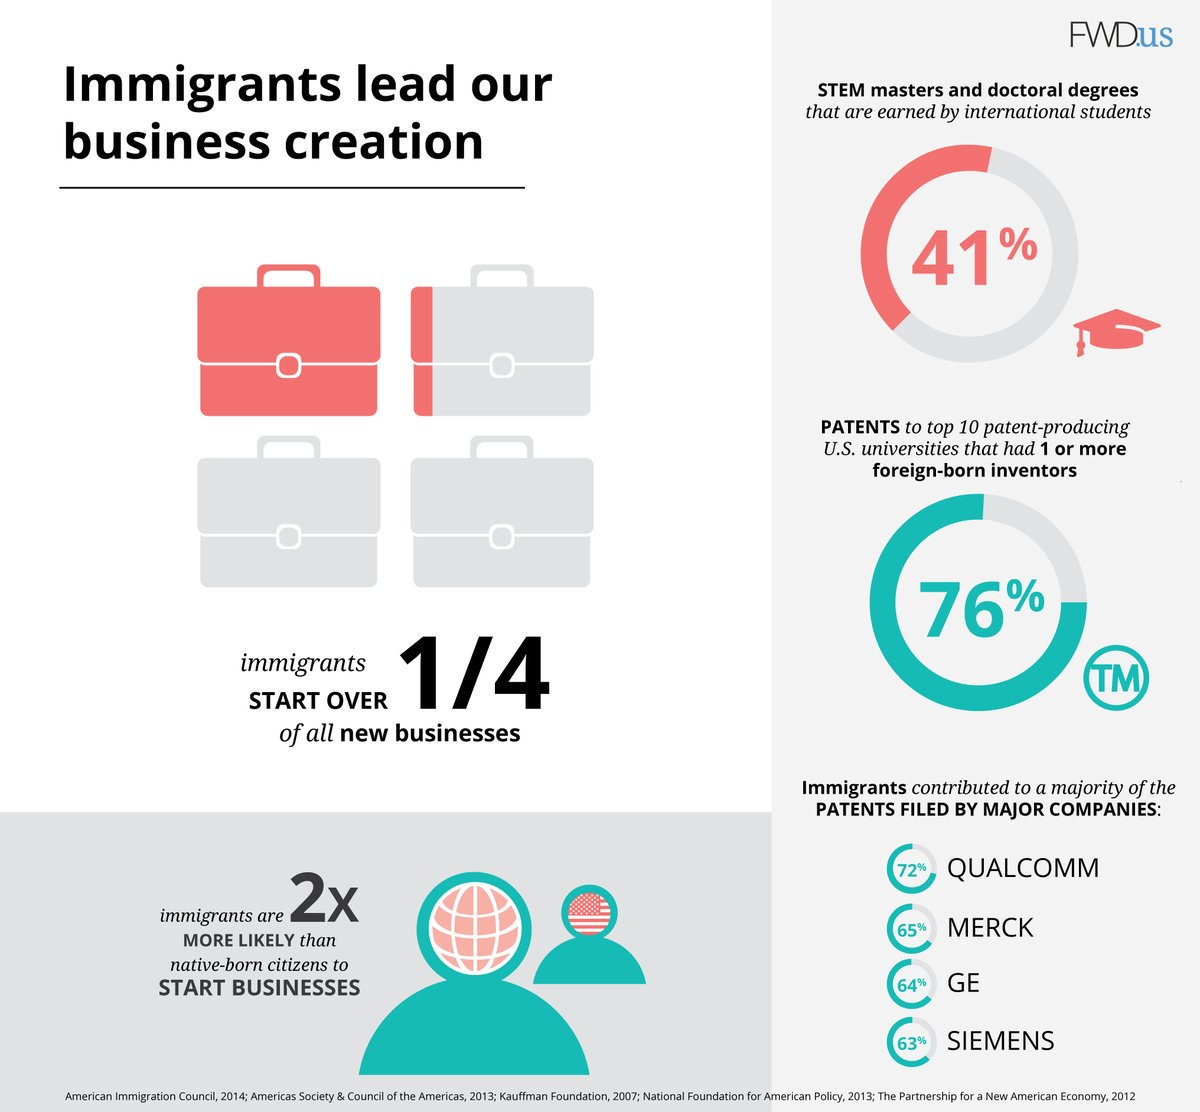 how immigrants create jobs A recent study found that about half of unicorns in the us owe their existence to immigrants in this case, by unicorn, we mean highlynbspmay 1, 2015 the argument goes something like this an increase in the supply of workers creates additional competition for jobs, and if immigrants arenbsp workers on the boezberg tunnel construction site in schinznachdorf, canton aargau, on .